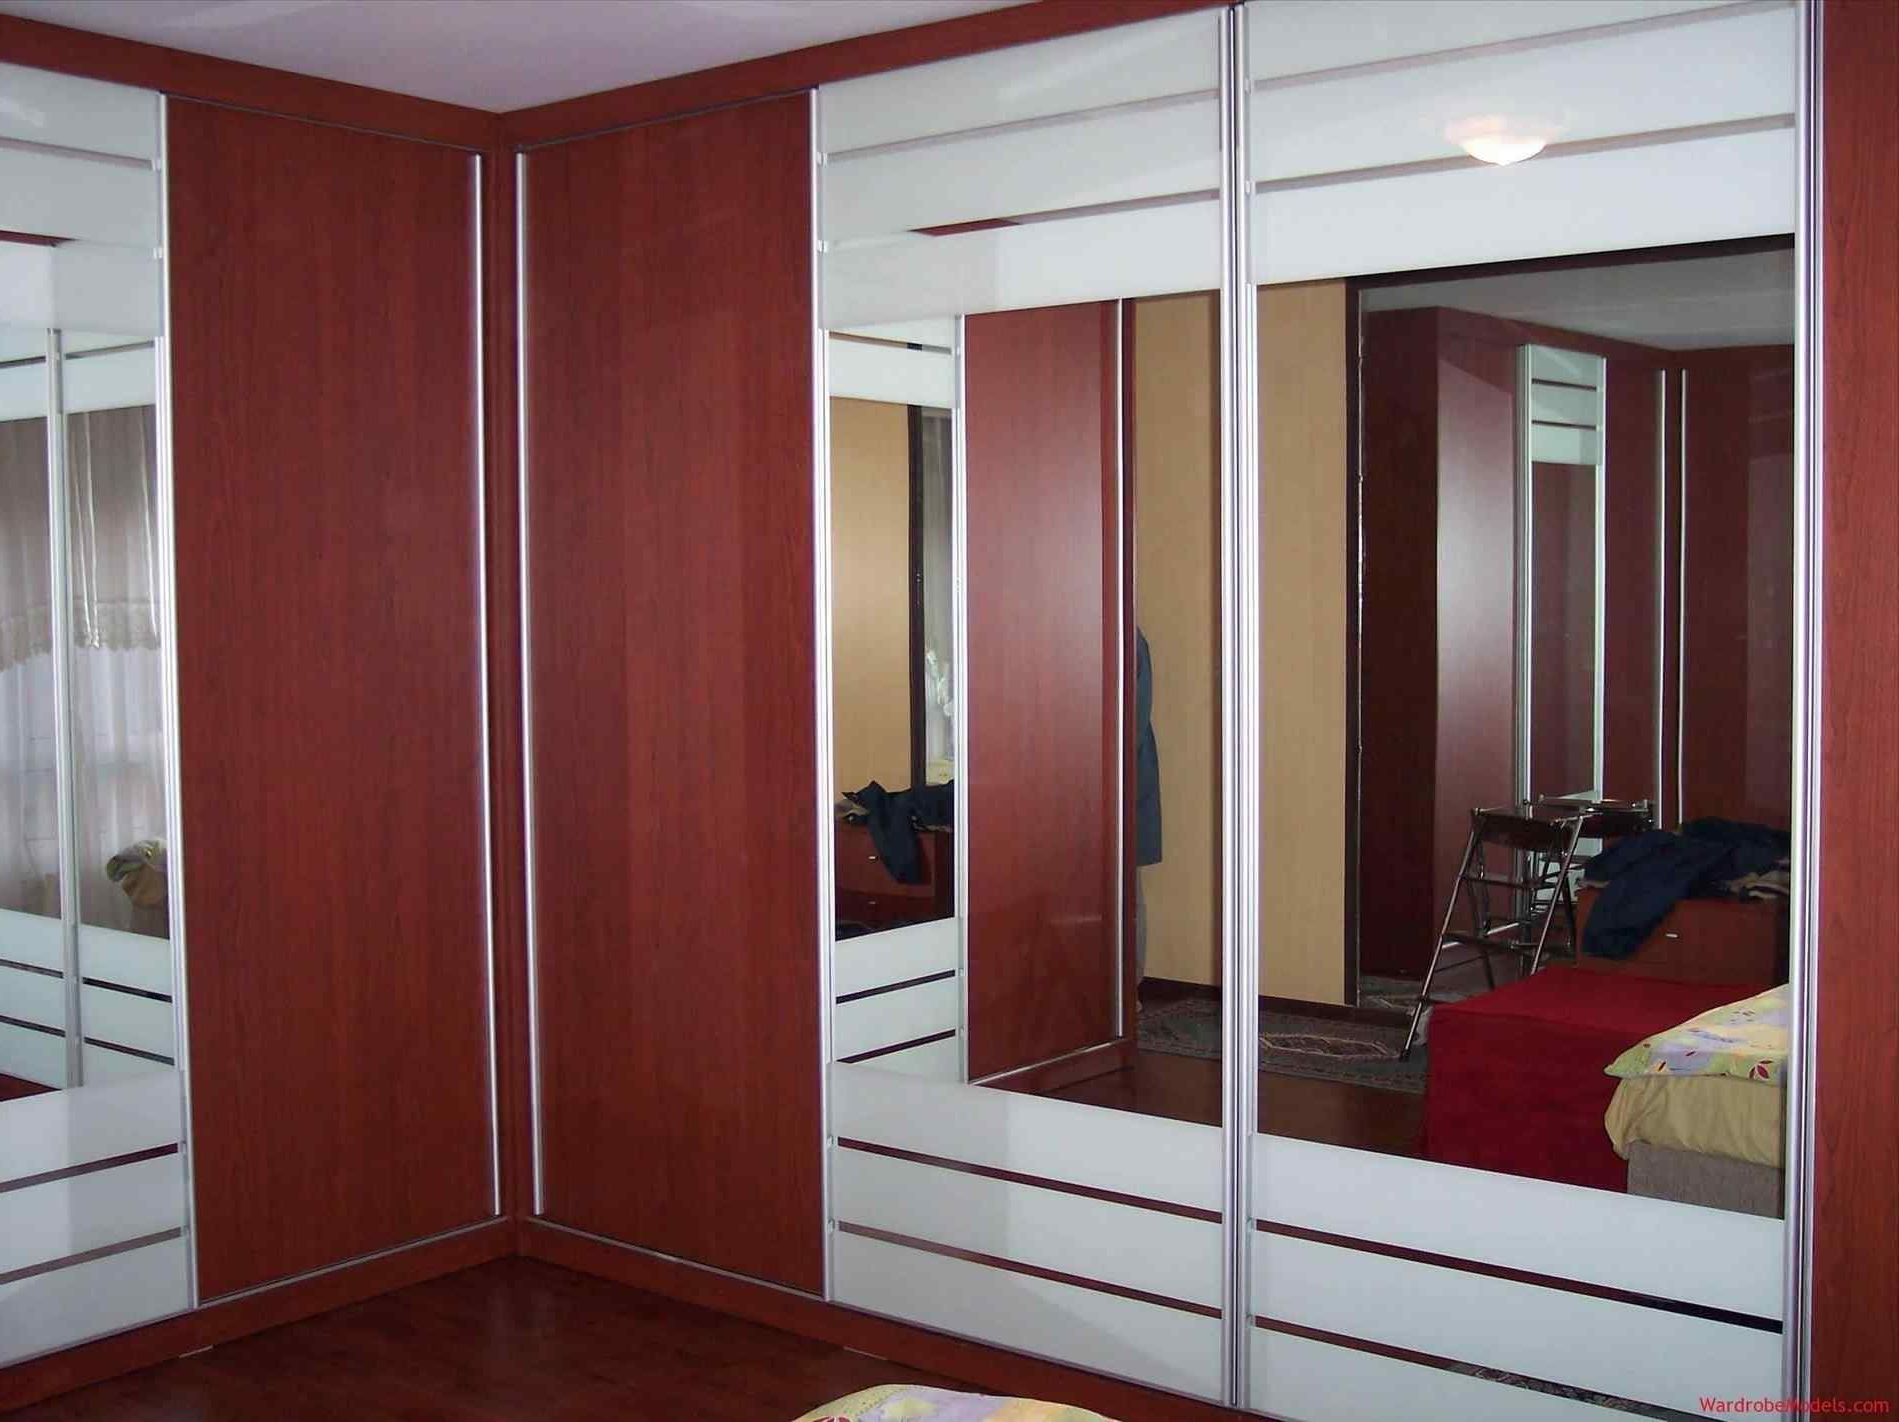 Widely Used Low Cost Wardrobes Inside Wardrobe & Armoire : Bedroom Low Cost Wardrobes Designs Wooden (View 15 of 15)